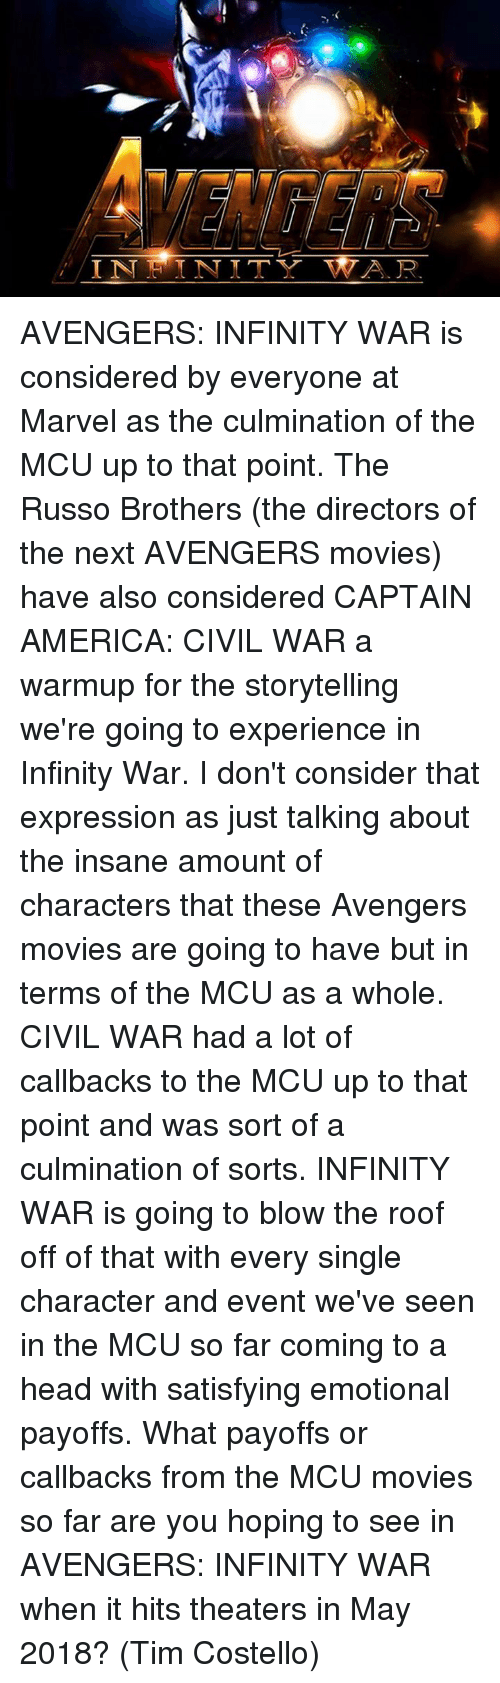 Captain America: Civil War, Memes, and Civil War: IN IN IT  A. R AVENGERS: INFINITY WAR is considered by everyone at Marvel as the culmination of the MCU up to that point. The Russo Brothers (the directors of the next AVENGERS movies) have also considered CAPTAIN AMERICA: CIVIL WAR a warmup for the storytelling we're going to experience in Infinity War.  I don't consider that expression as just talking about the insane amount of characters that these Avengers movies are going to have but in terms of the MCU as a whole. CIVIL WAR had a lot of callbacks to the MCU up to that point and was sort of a culmination of sorts. INFINITY WAR is going to blow the roof off of that with every single character and event we've seen in the MCU so far coming to a head with satisfying emotional payoffs.  What payoffs or callbacks from the MCU movies so far are you hoping to see in AVENGERS: INFINITY WAR when it hits theaters in May 2018?  (Tim Costello)